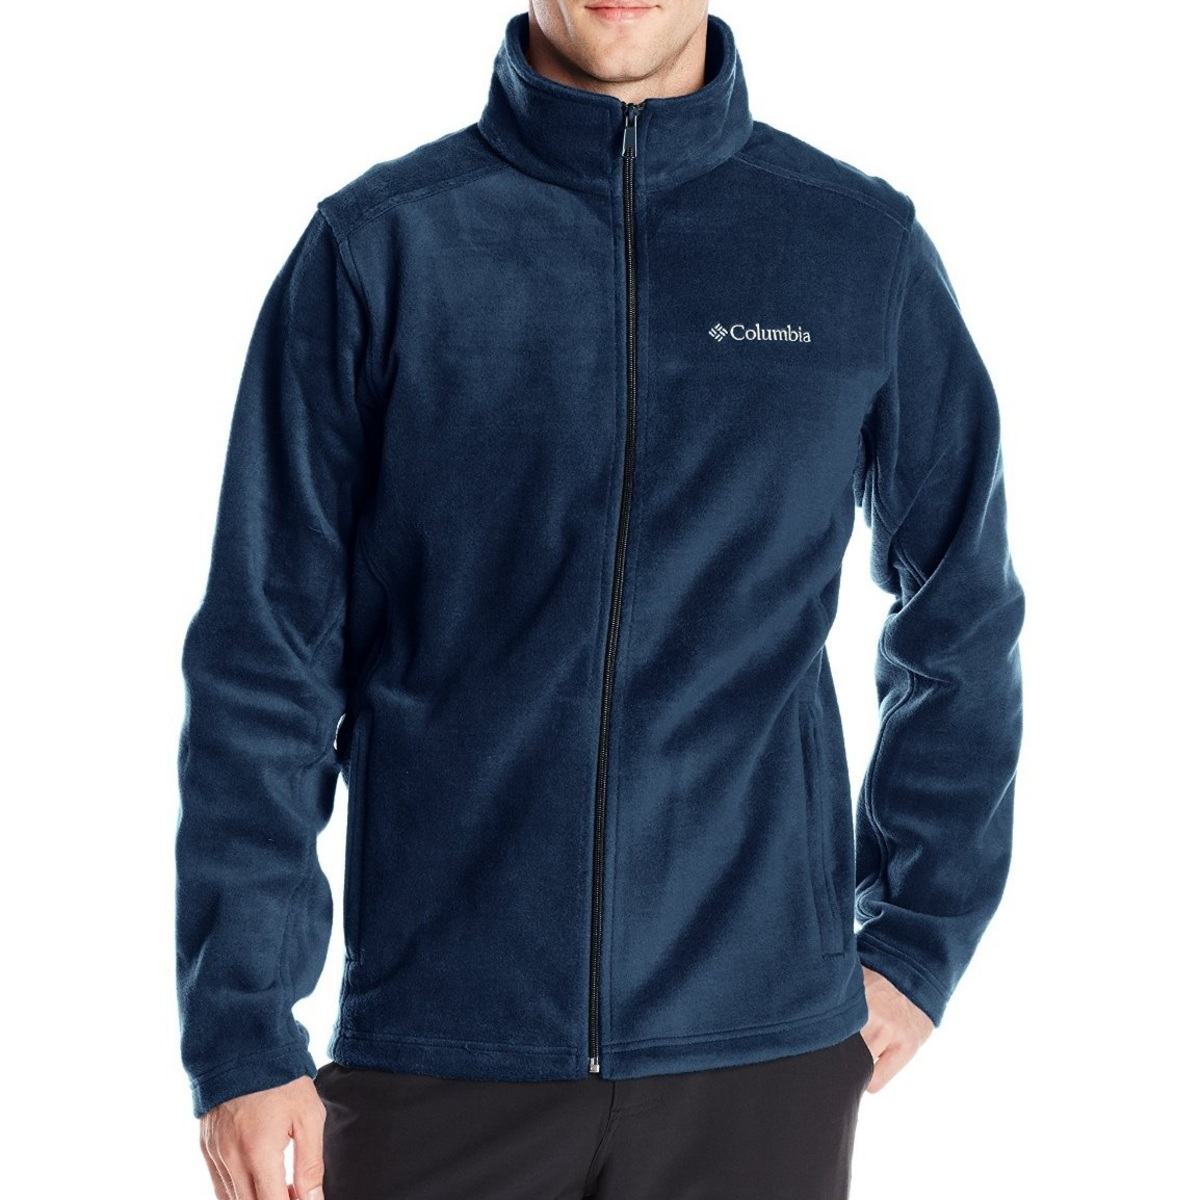 Columbia Mens Dotswarm Full Zip Jacket